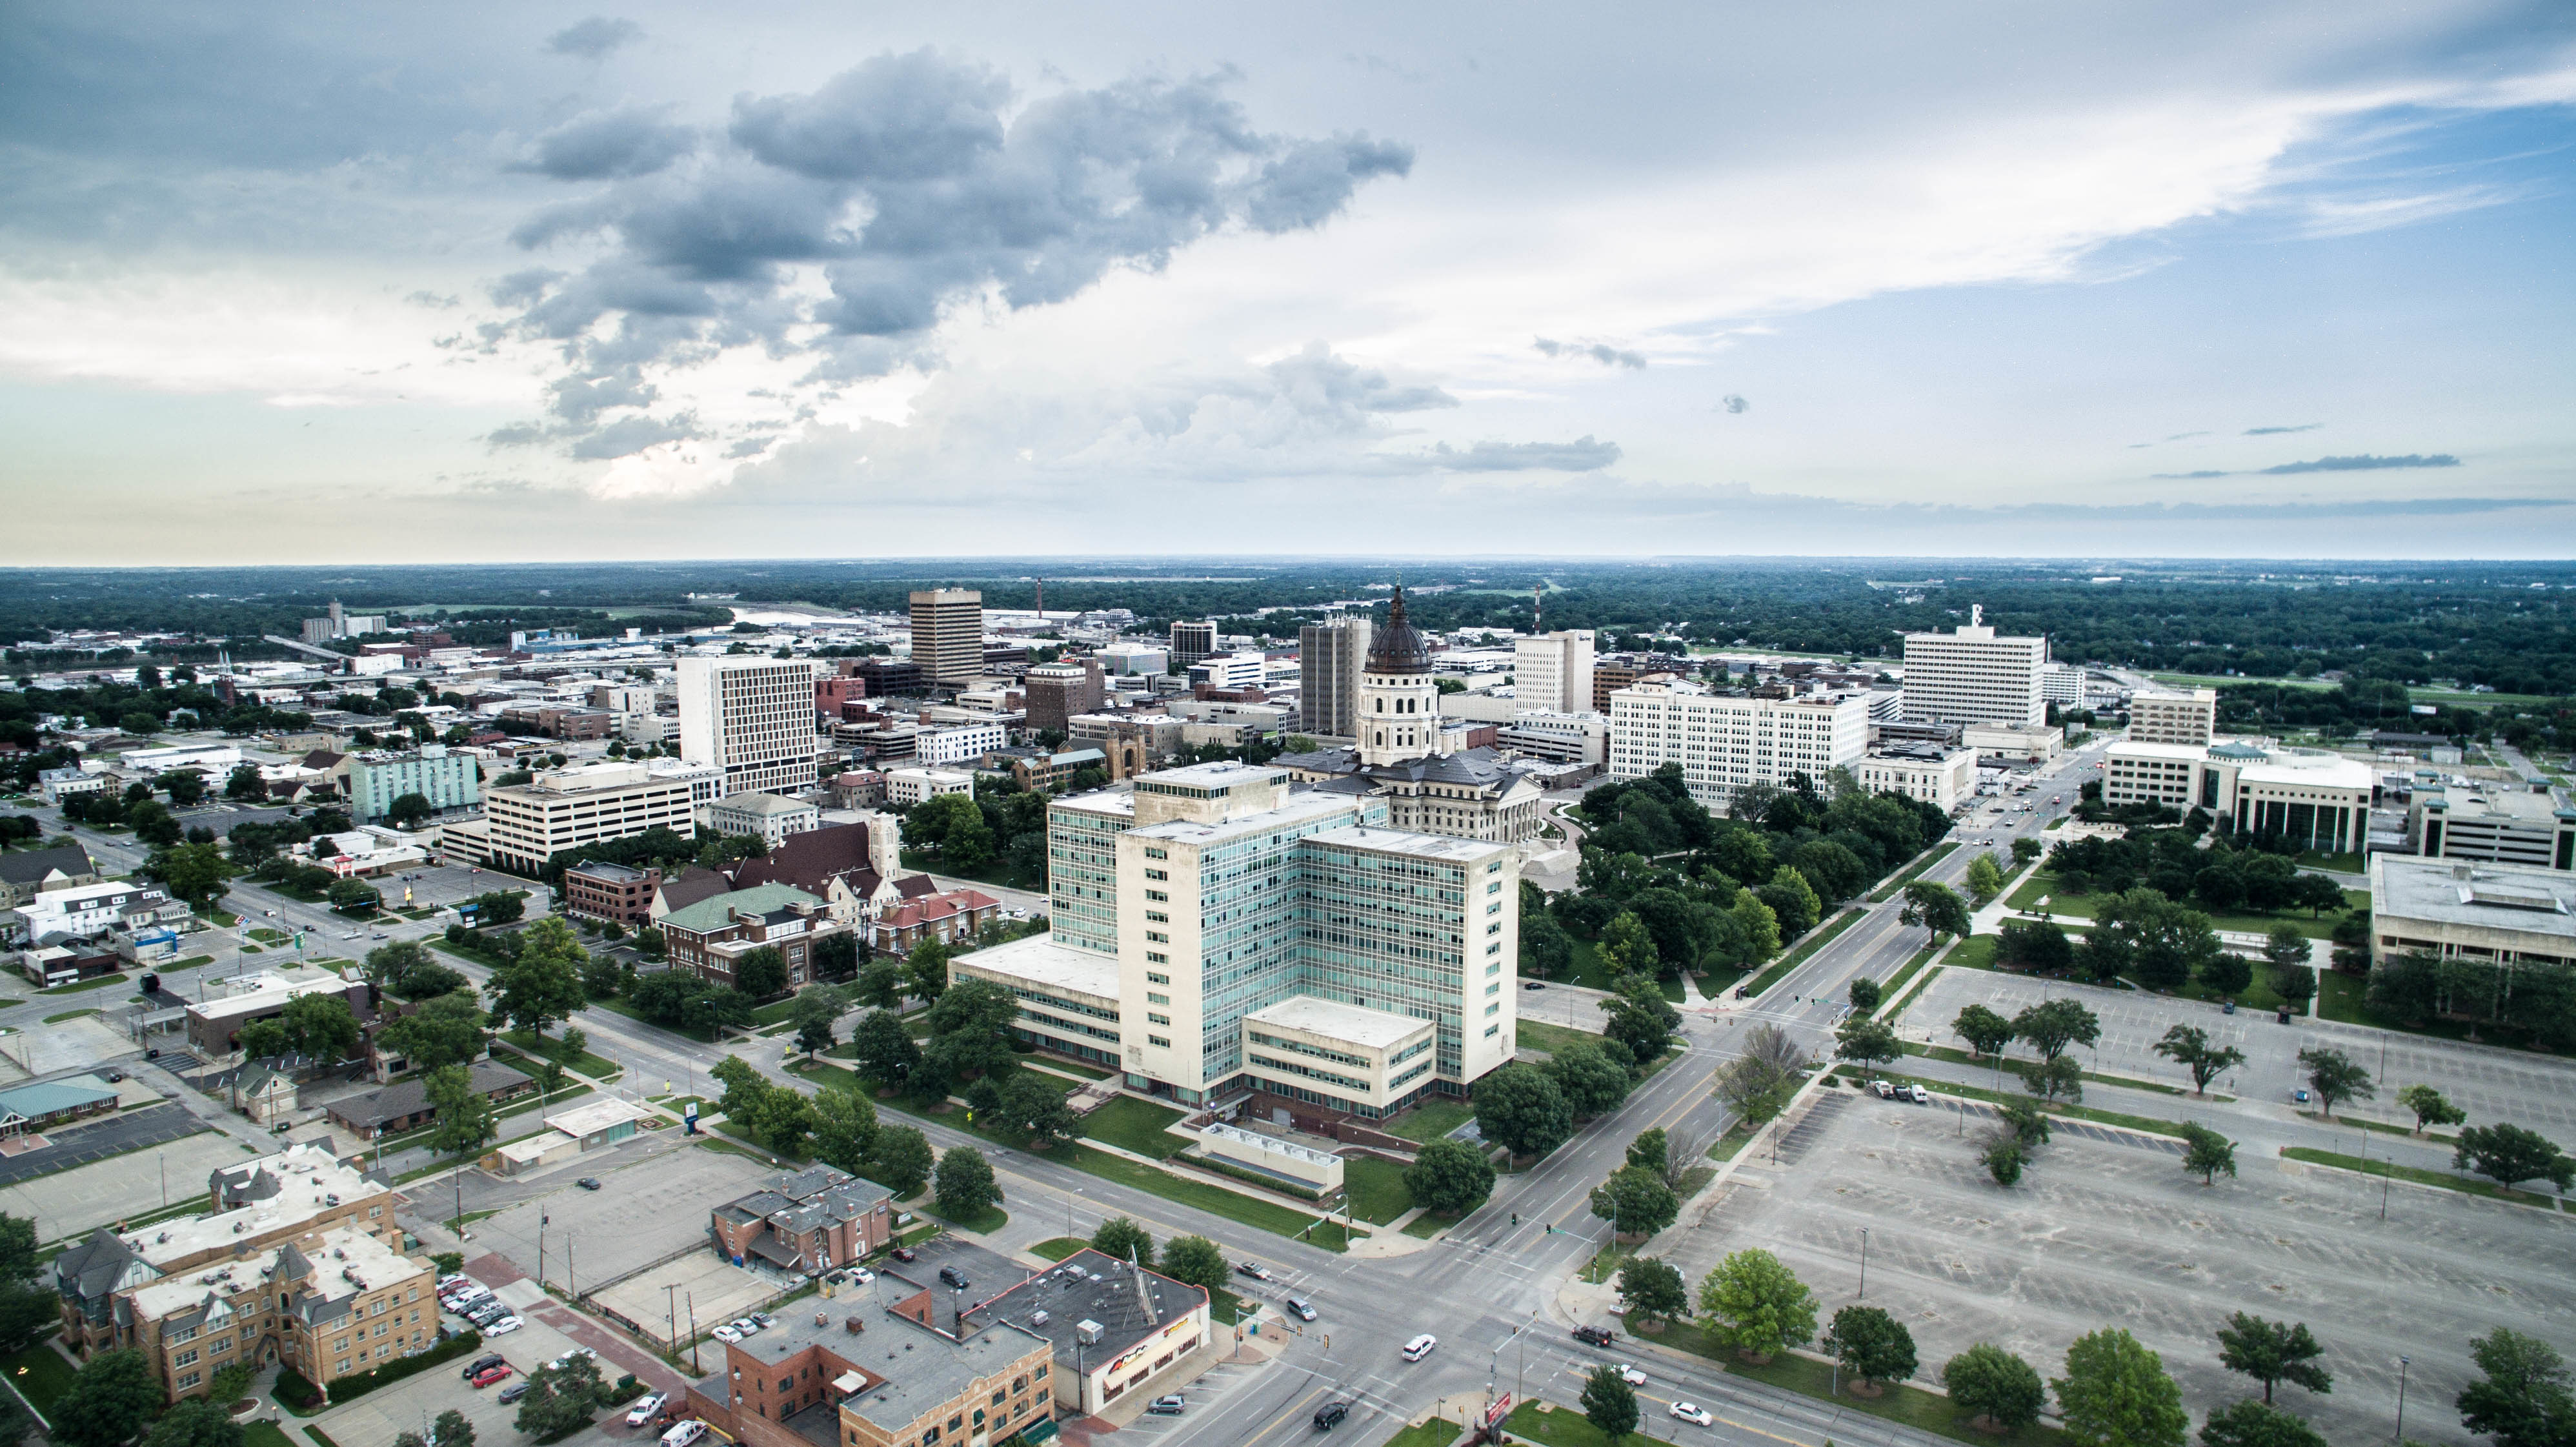 Topeka, Kansas, may not be the most popular city in the country. But that could change now that it's offering $15,000 for people to move there.